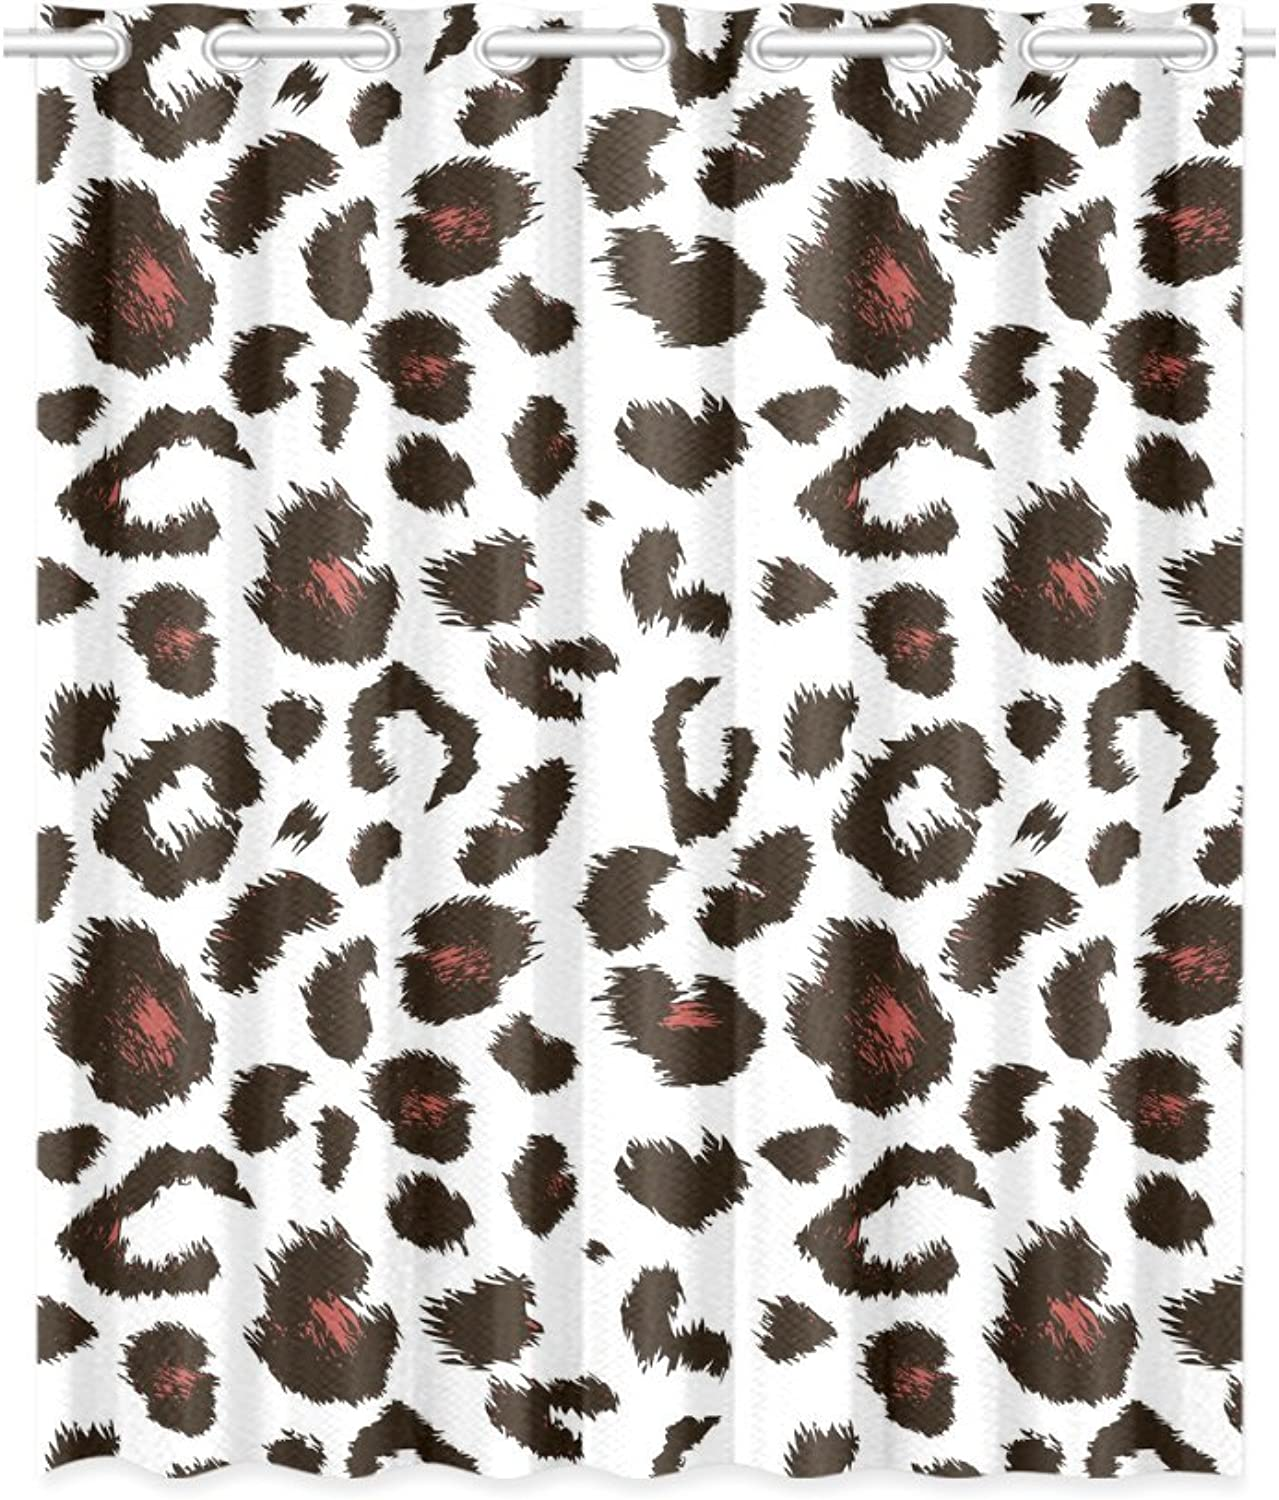 InterestPrint Blackout Window Curtain Leopard Print Pattern Room Bedroom Kitchen Home Living Solid Grommet Window Drapes Curtain 52x63 Inch